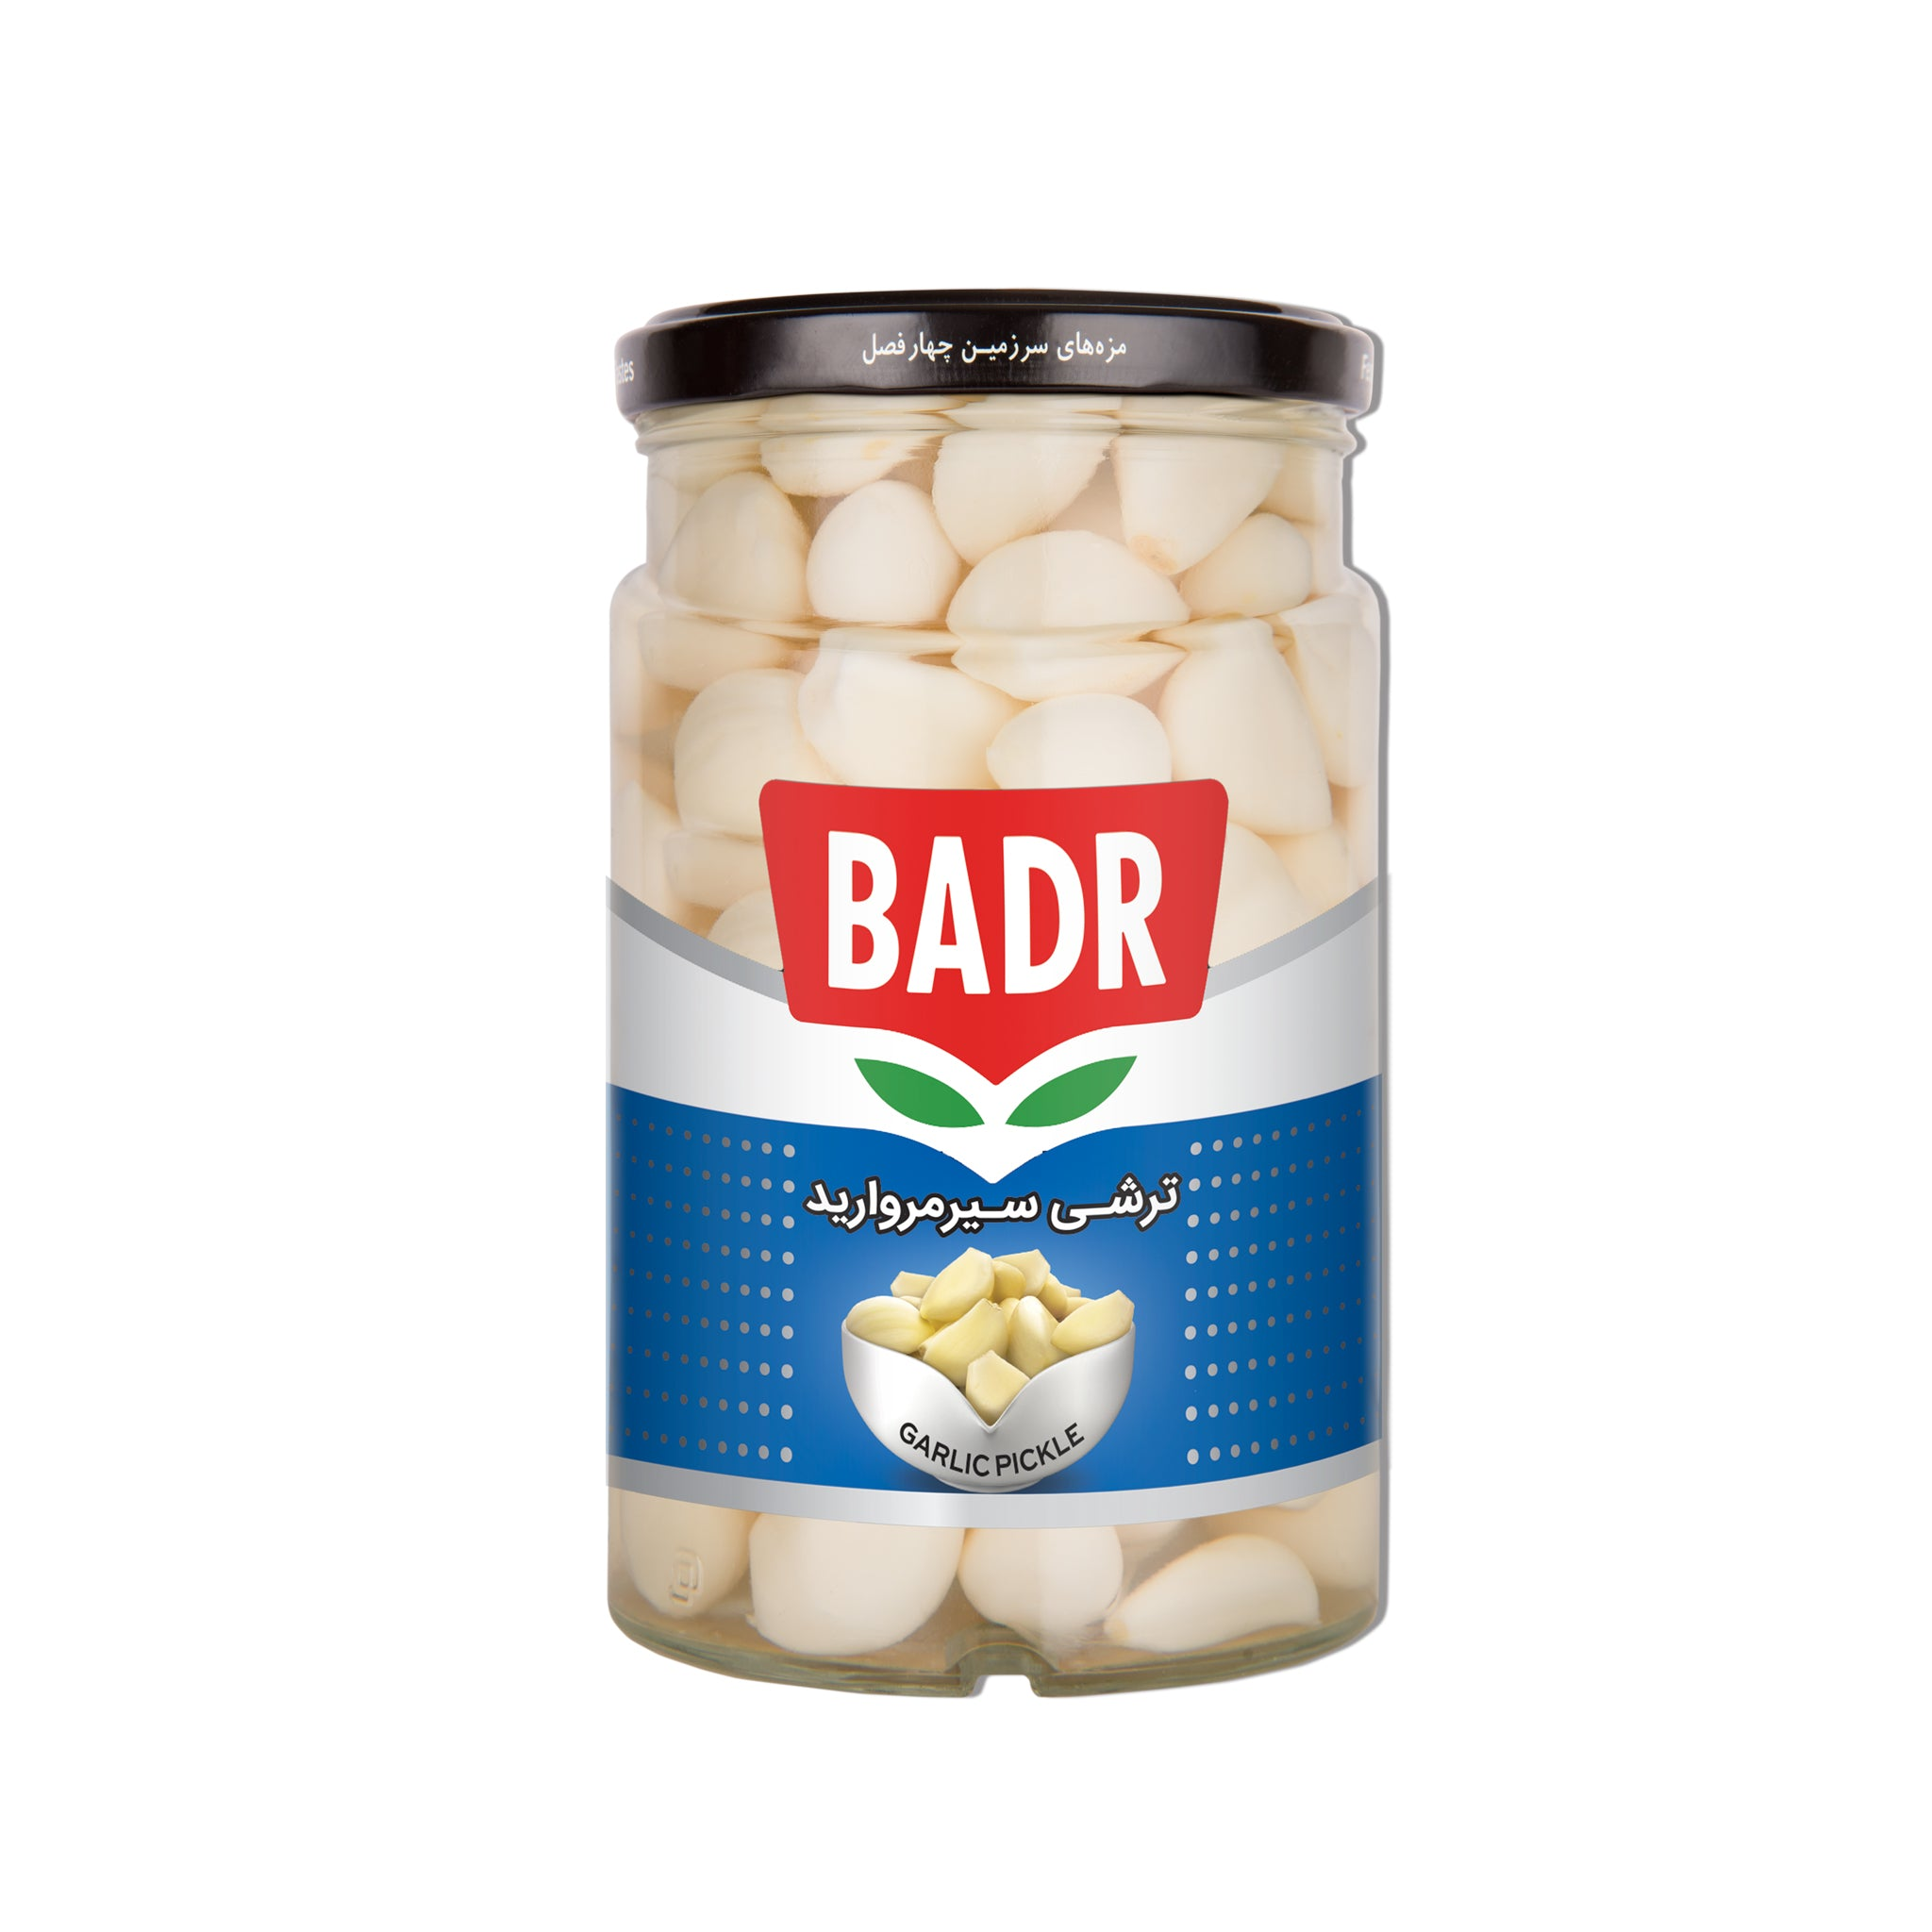 Badr Peeled Garlic Pickle